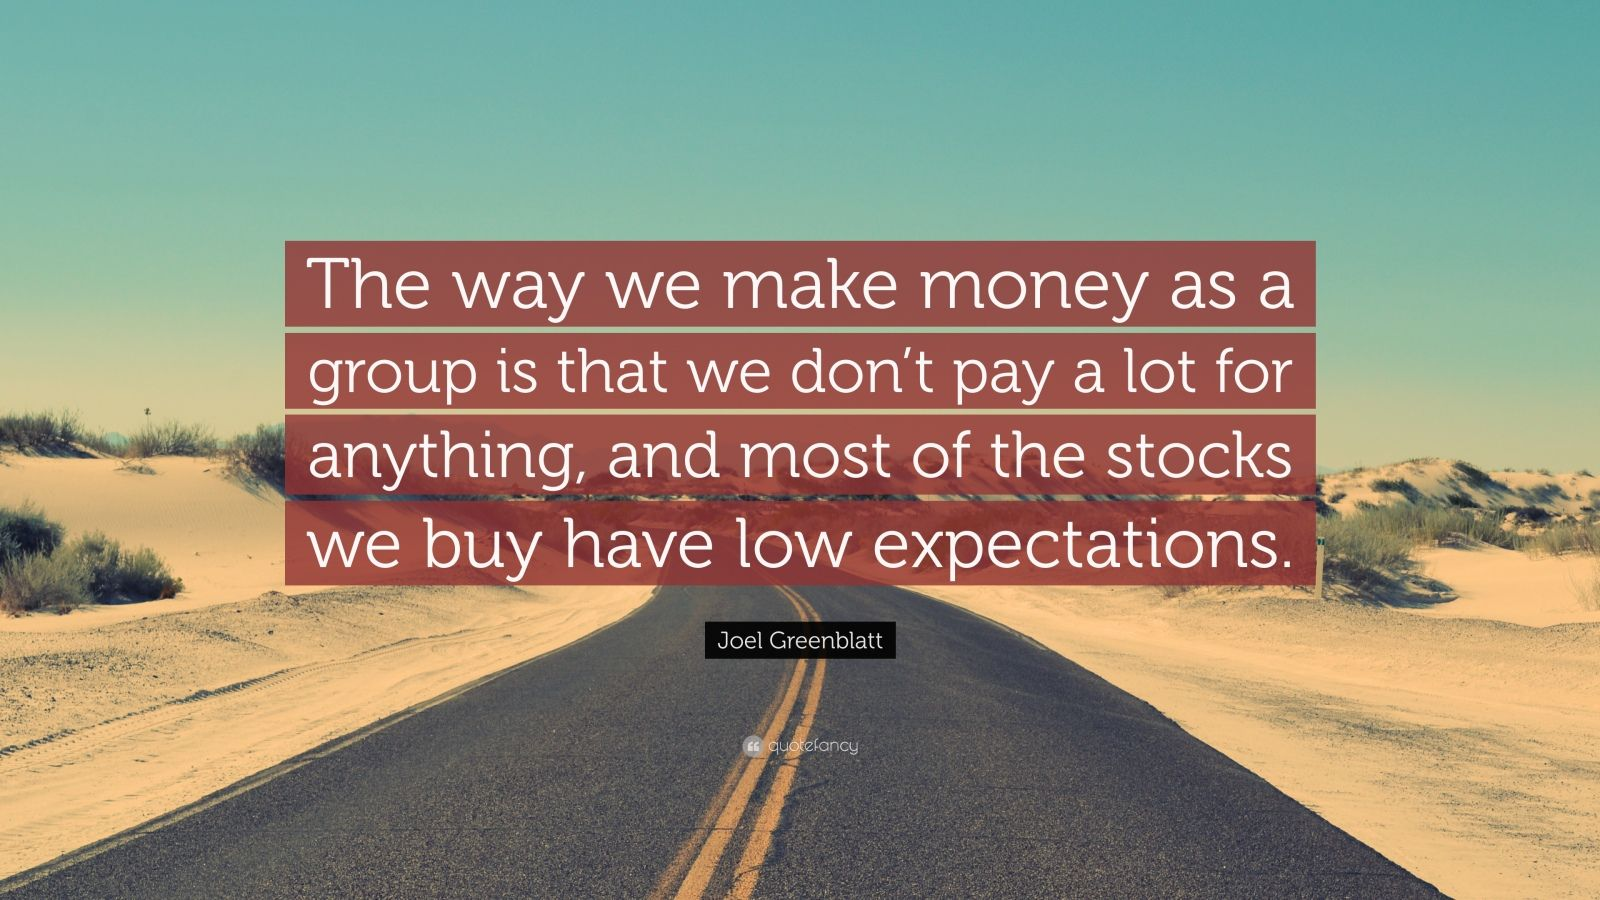 """Joel Greenblatt Quote: """"The way we make money as a group is that we don't pay a lot for anything, and most of the stocks we buy have low expectations."""""""